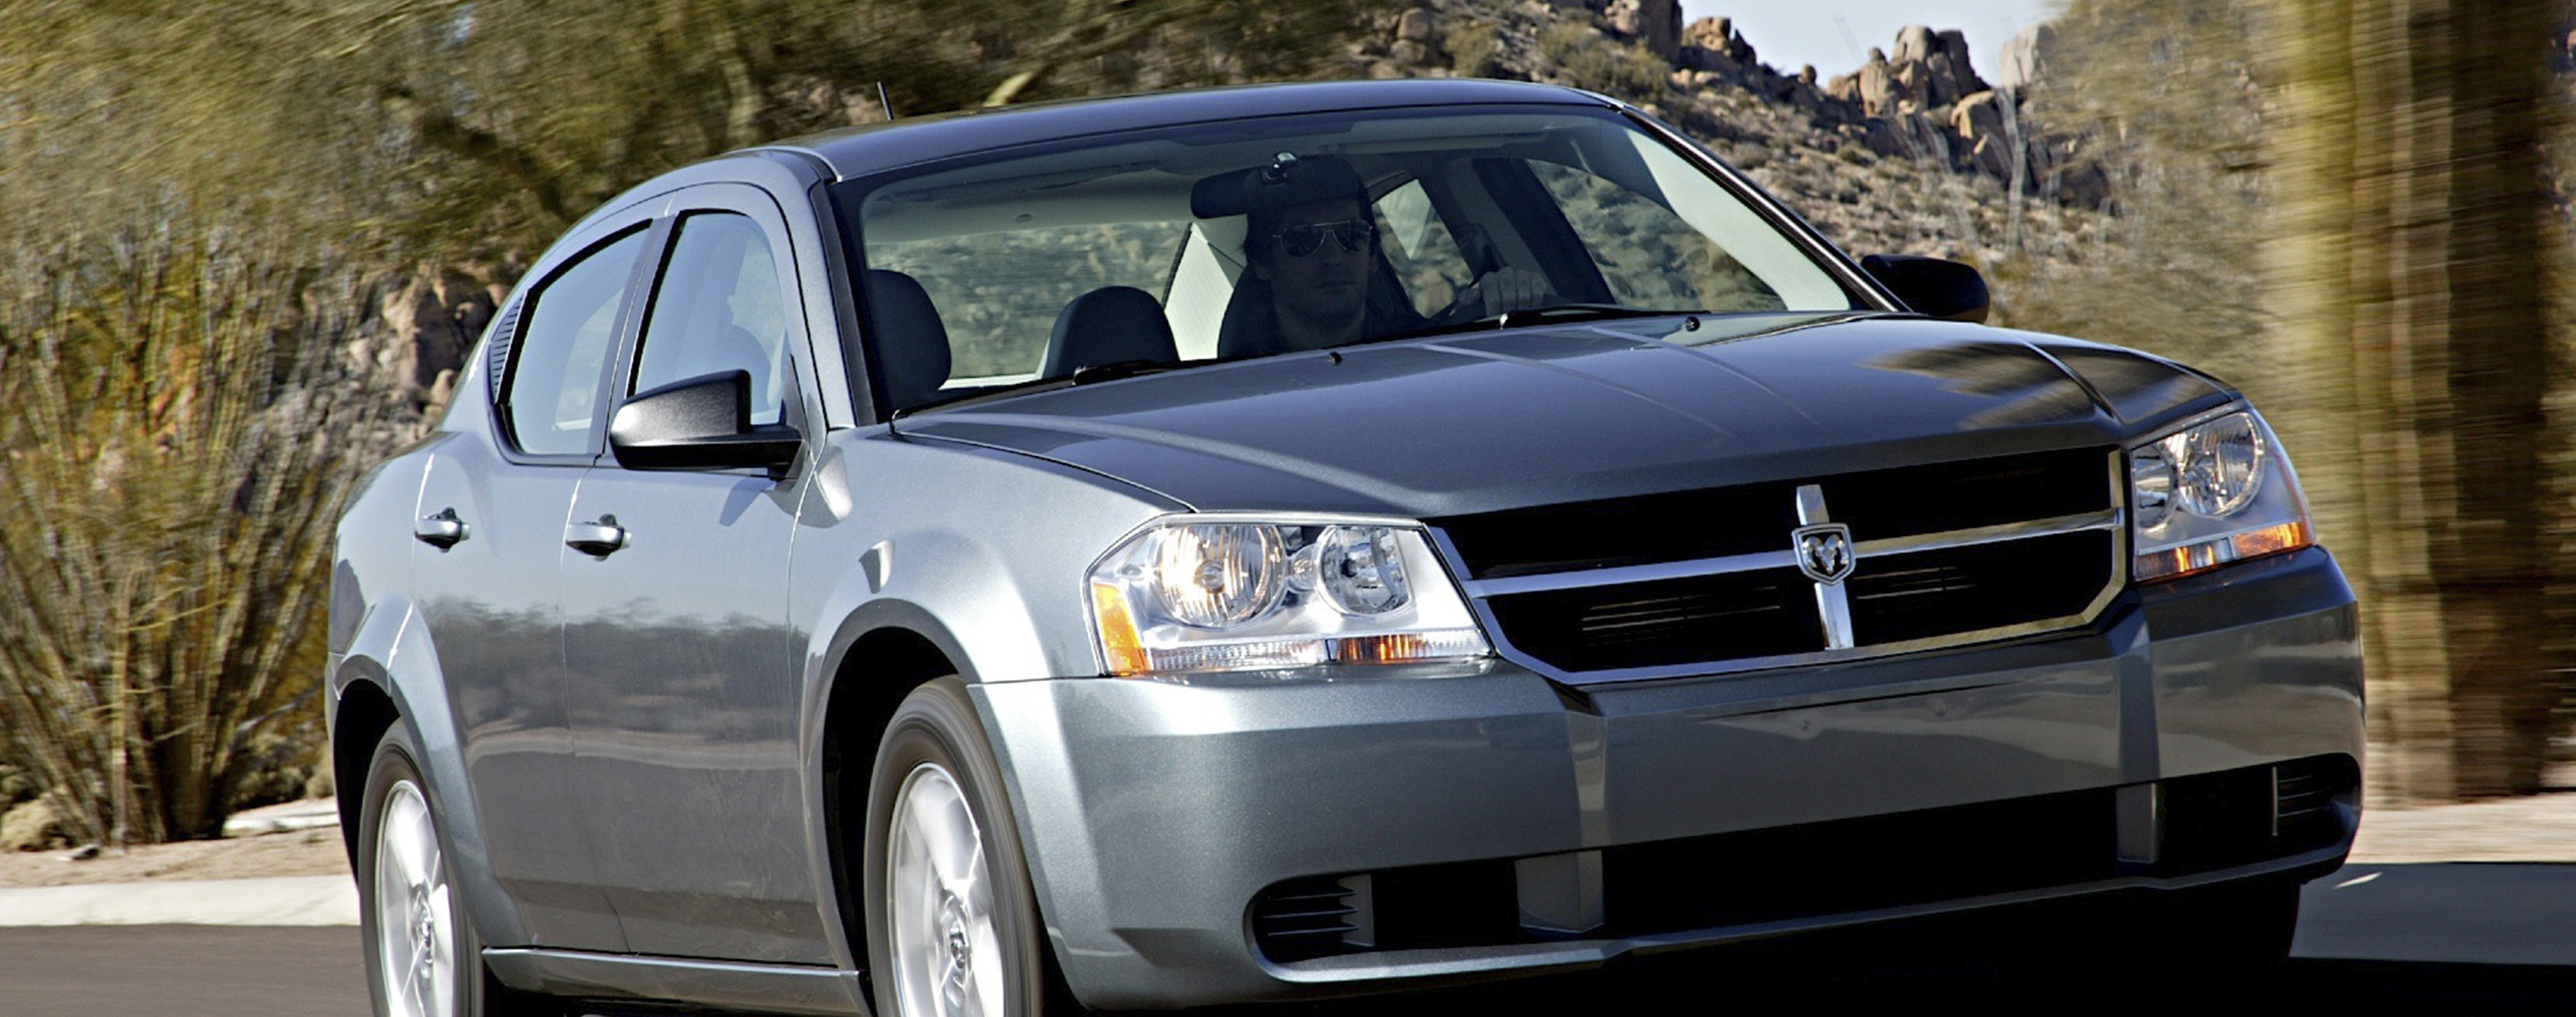 Dodge Avenger Testing with the GTR Lighting GEN 3 LED Headlight Bulbs.